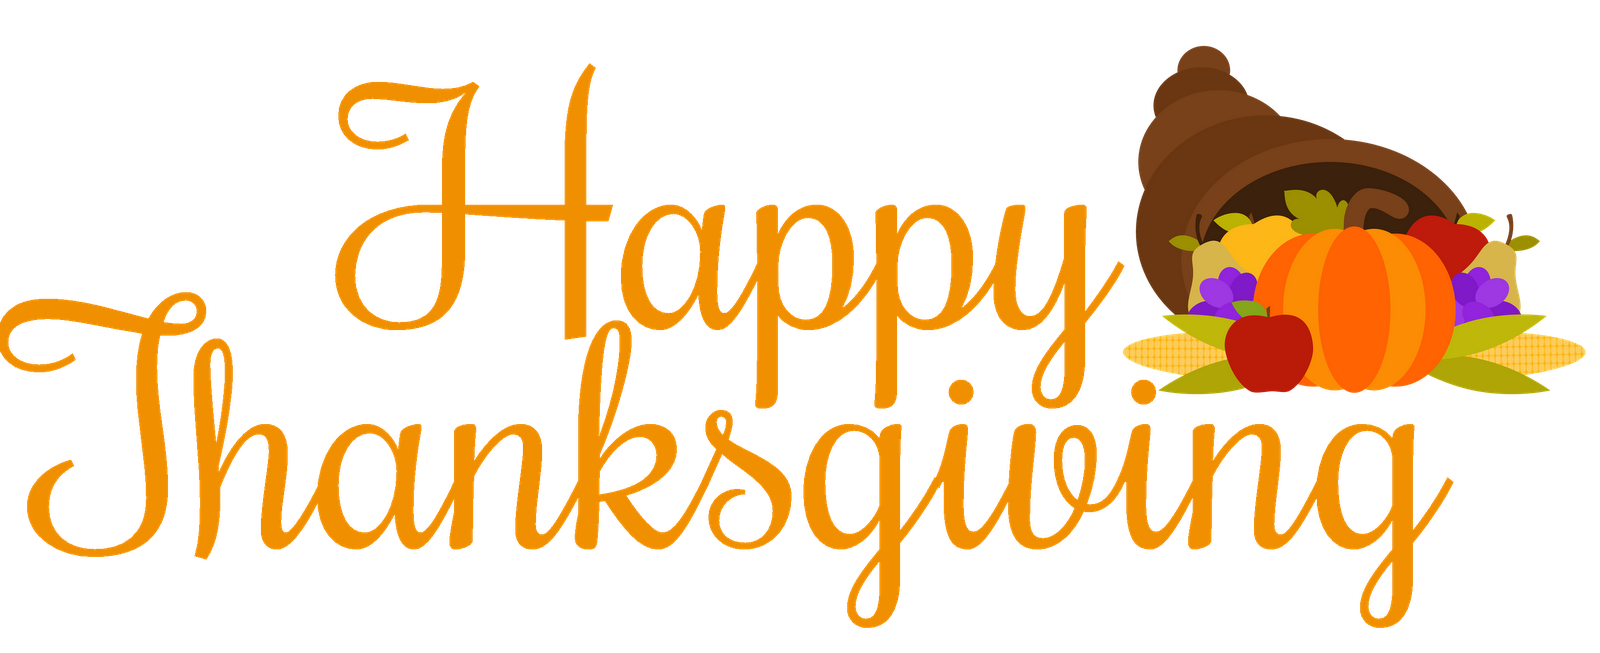 Happy rotary club of. Clipart thanksgiving boarder